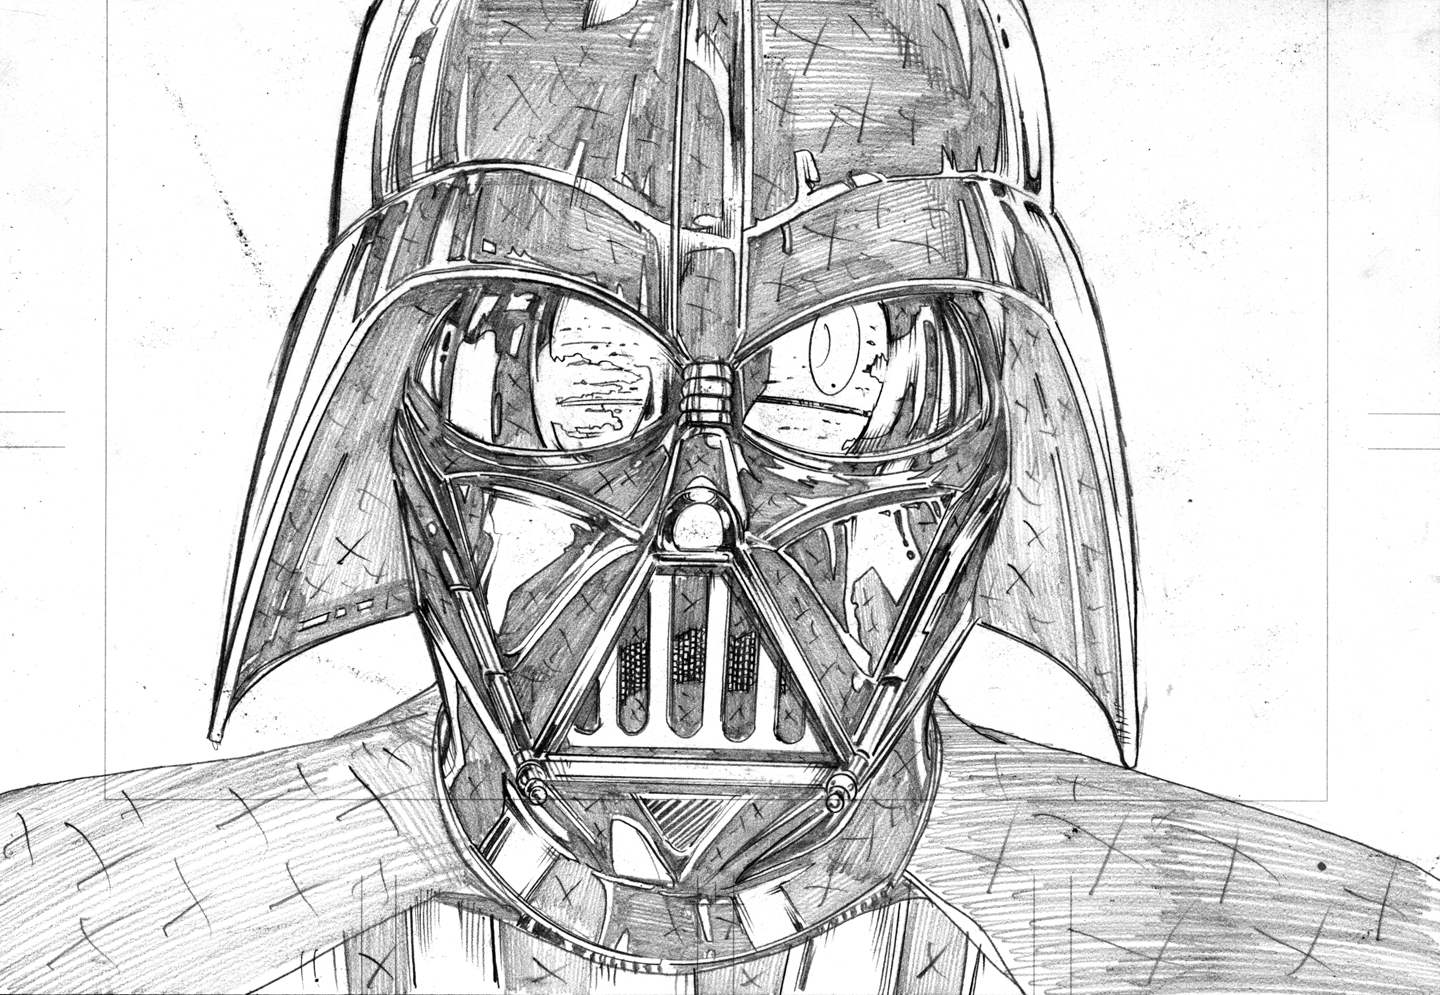 Drawn wars Drawing Wars Image Star Beautiful